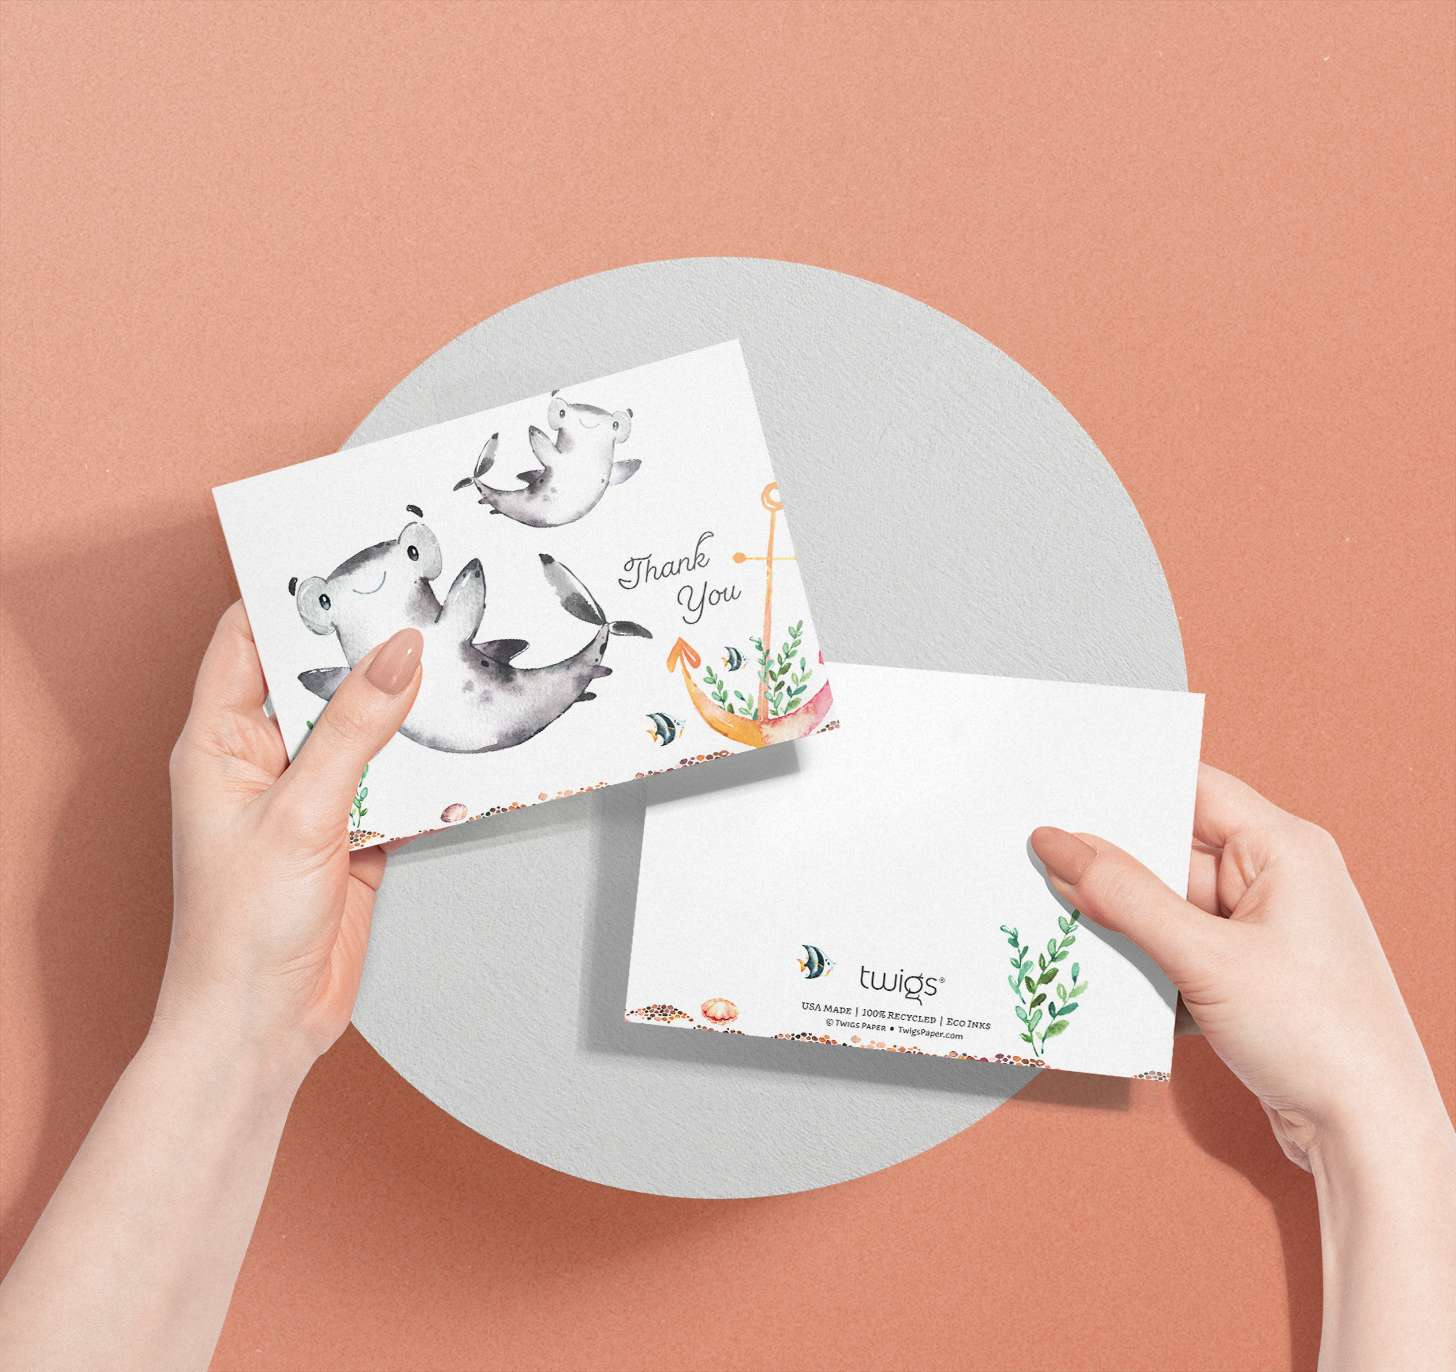 Woman's hands holding Mother and baby shark cards